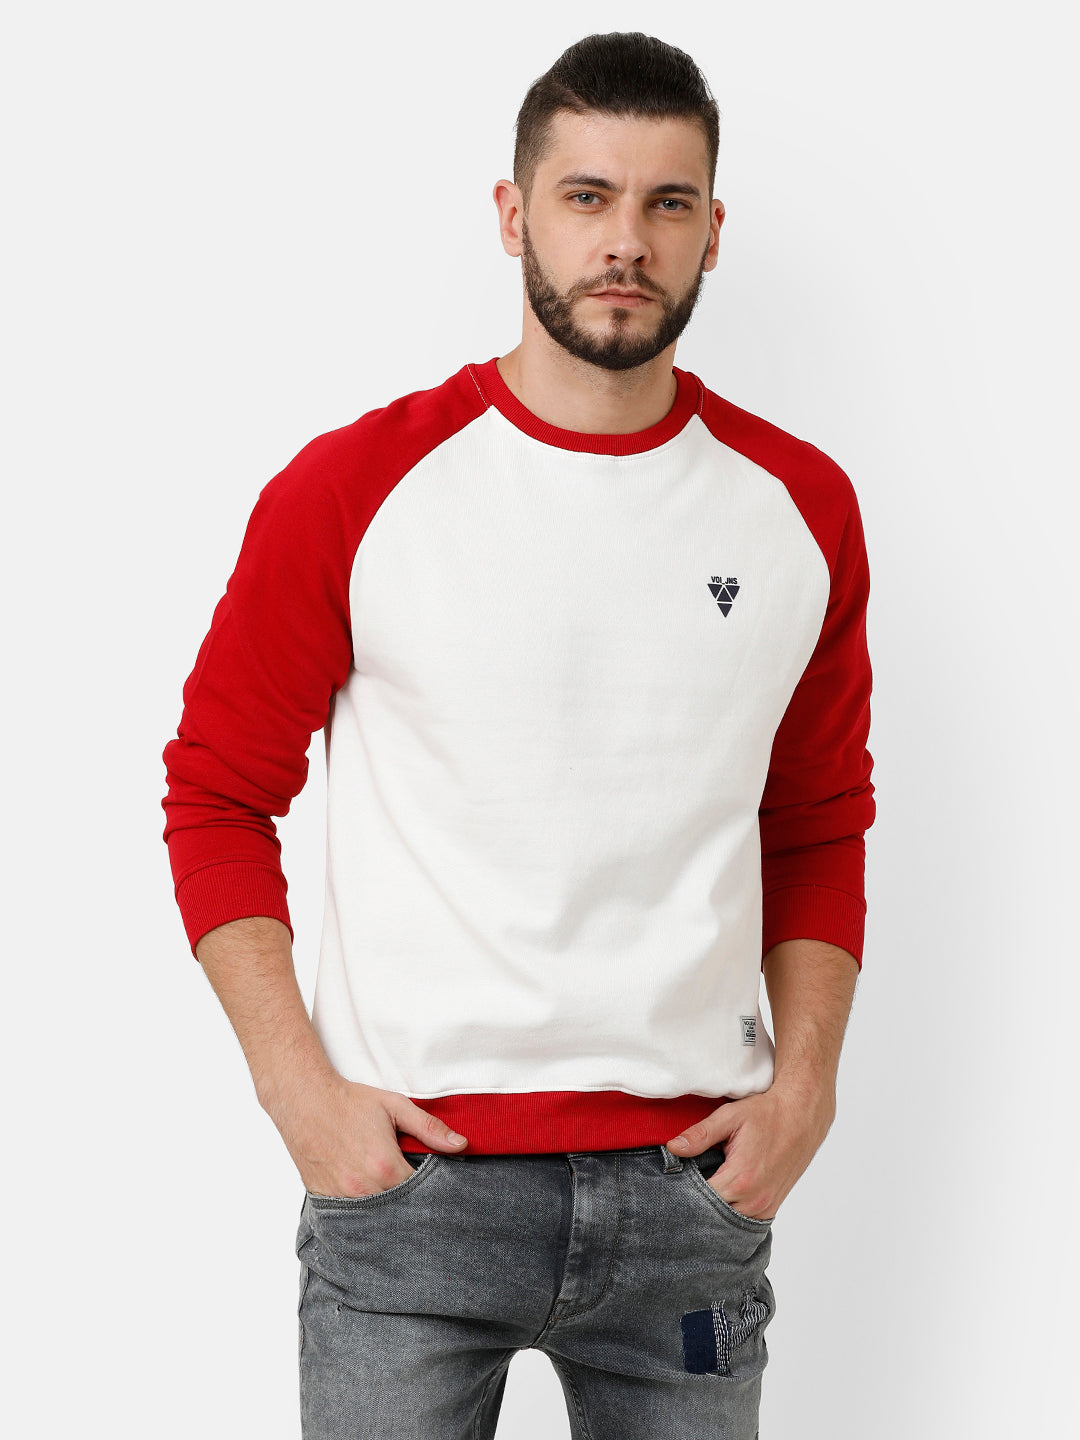 White and Red Sweatshirt